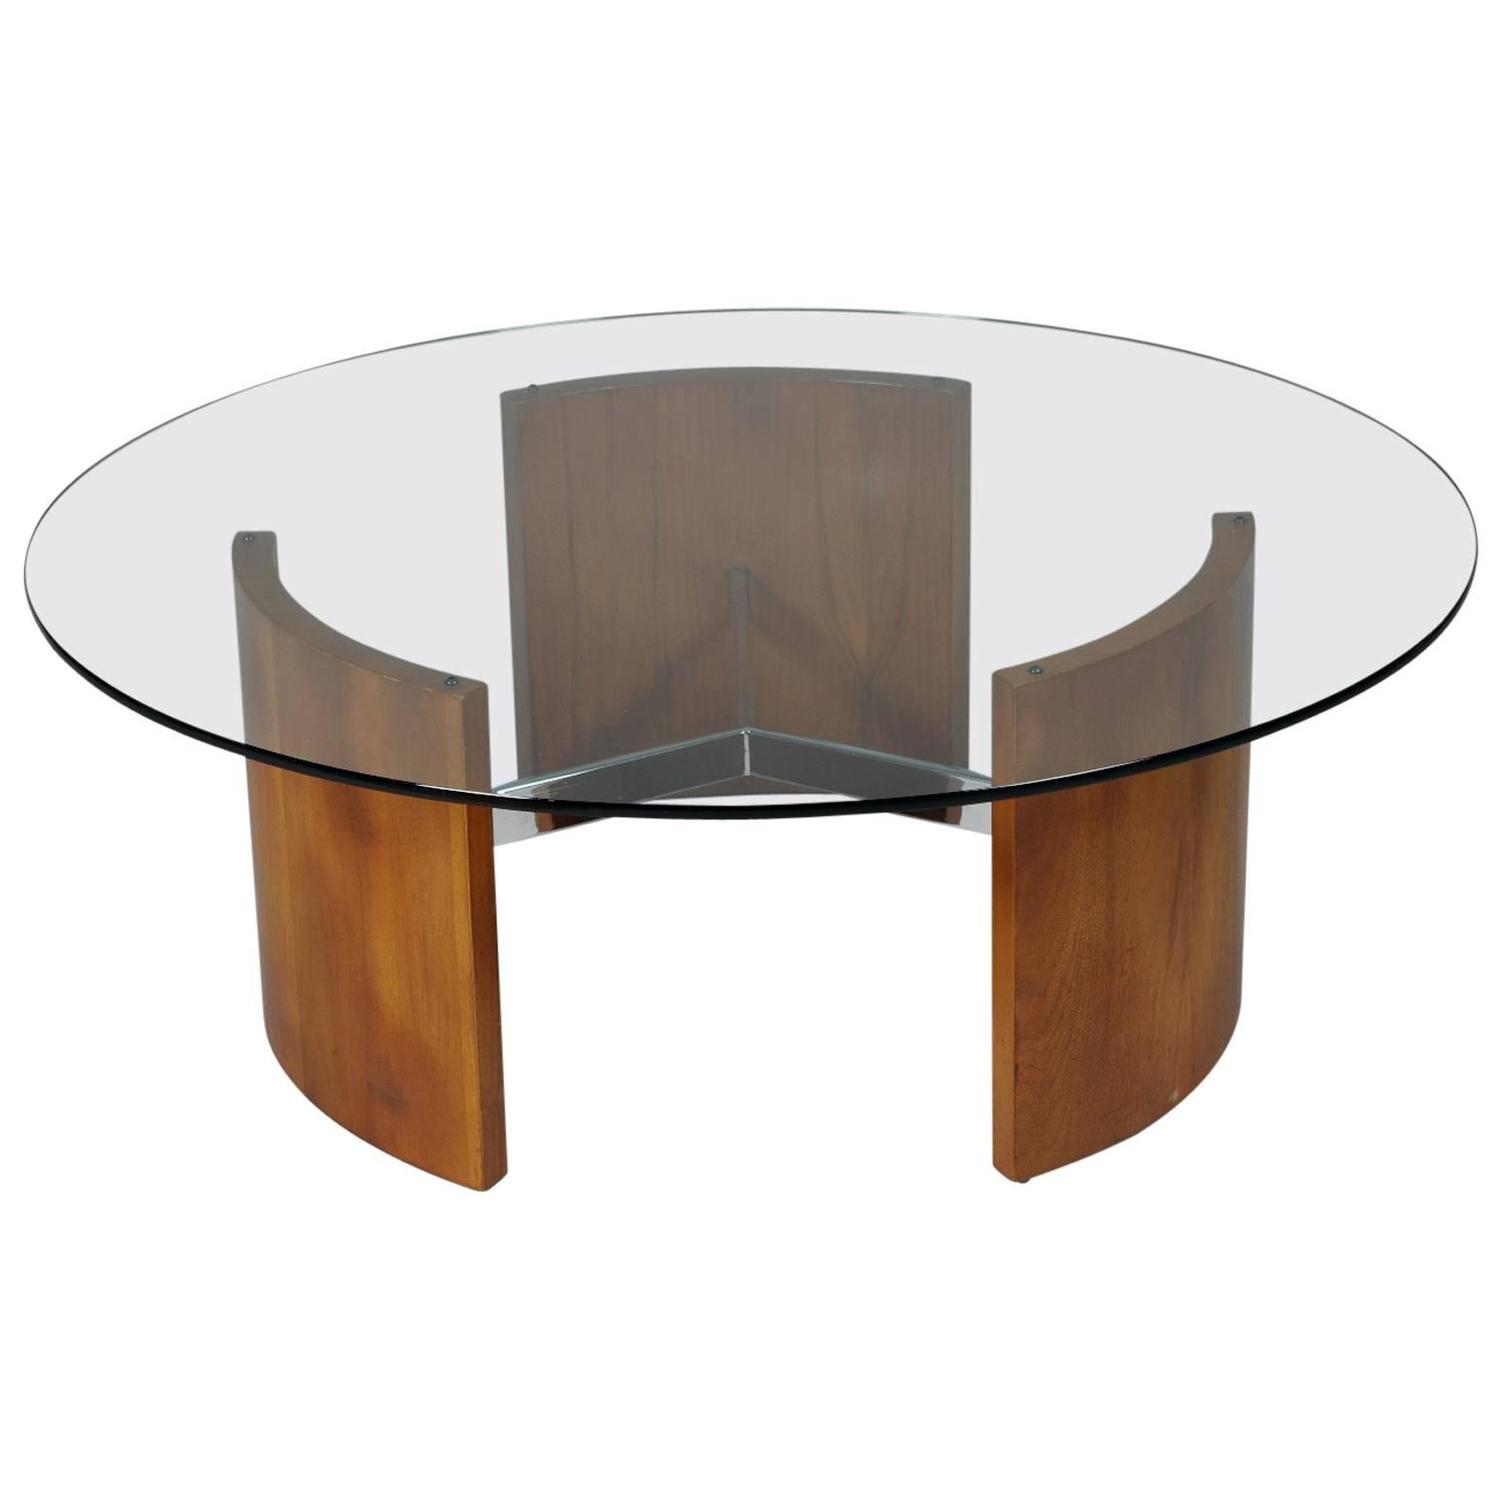 Radius Coffee Table By Vladimir Kagan At 1stdibs